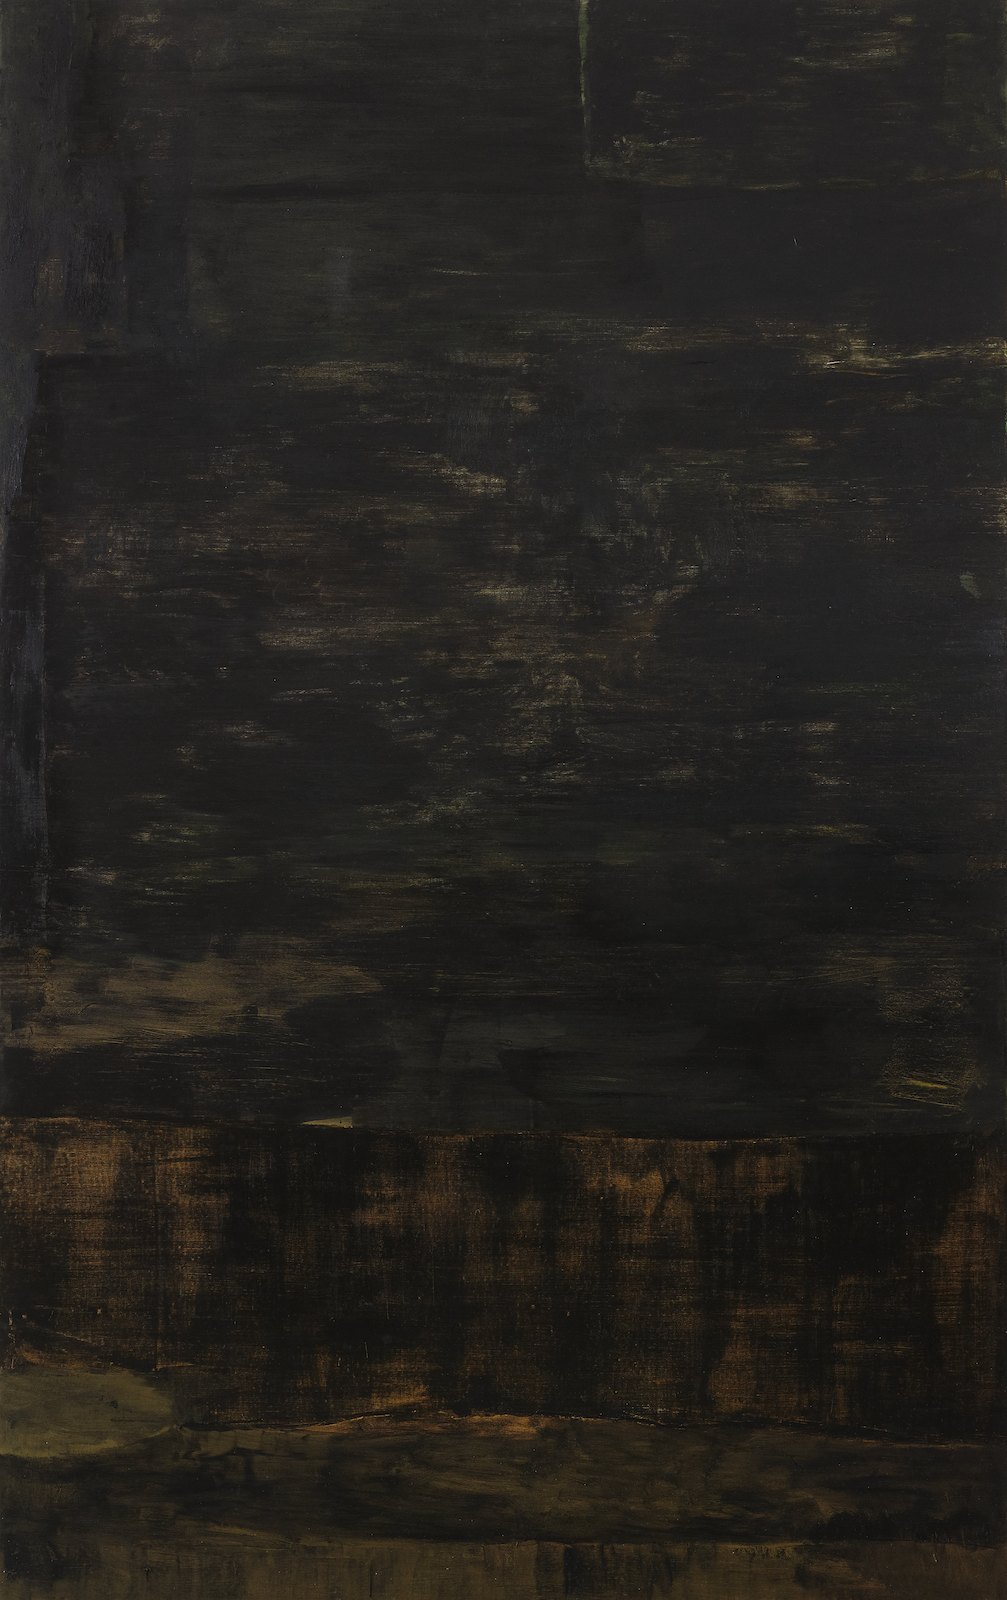 Untitled, 2011, oil on canvas, 287 x 180,5 cm